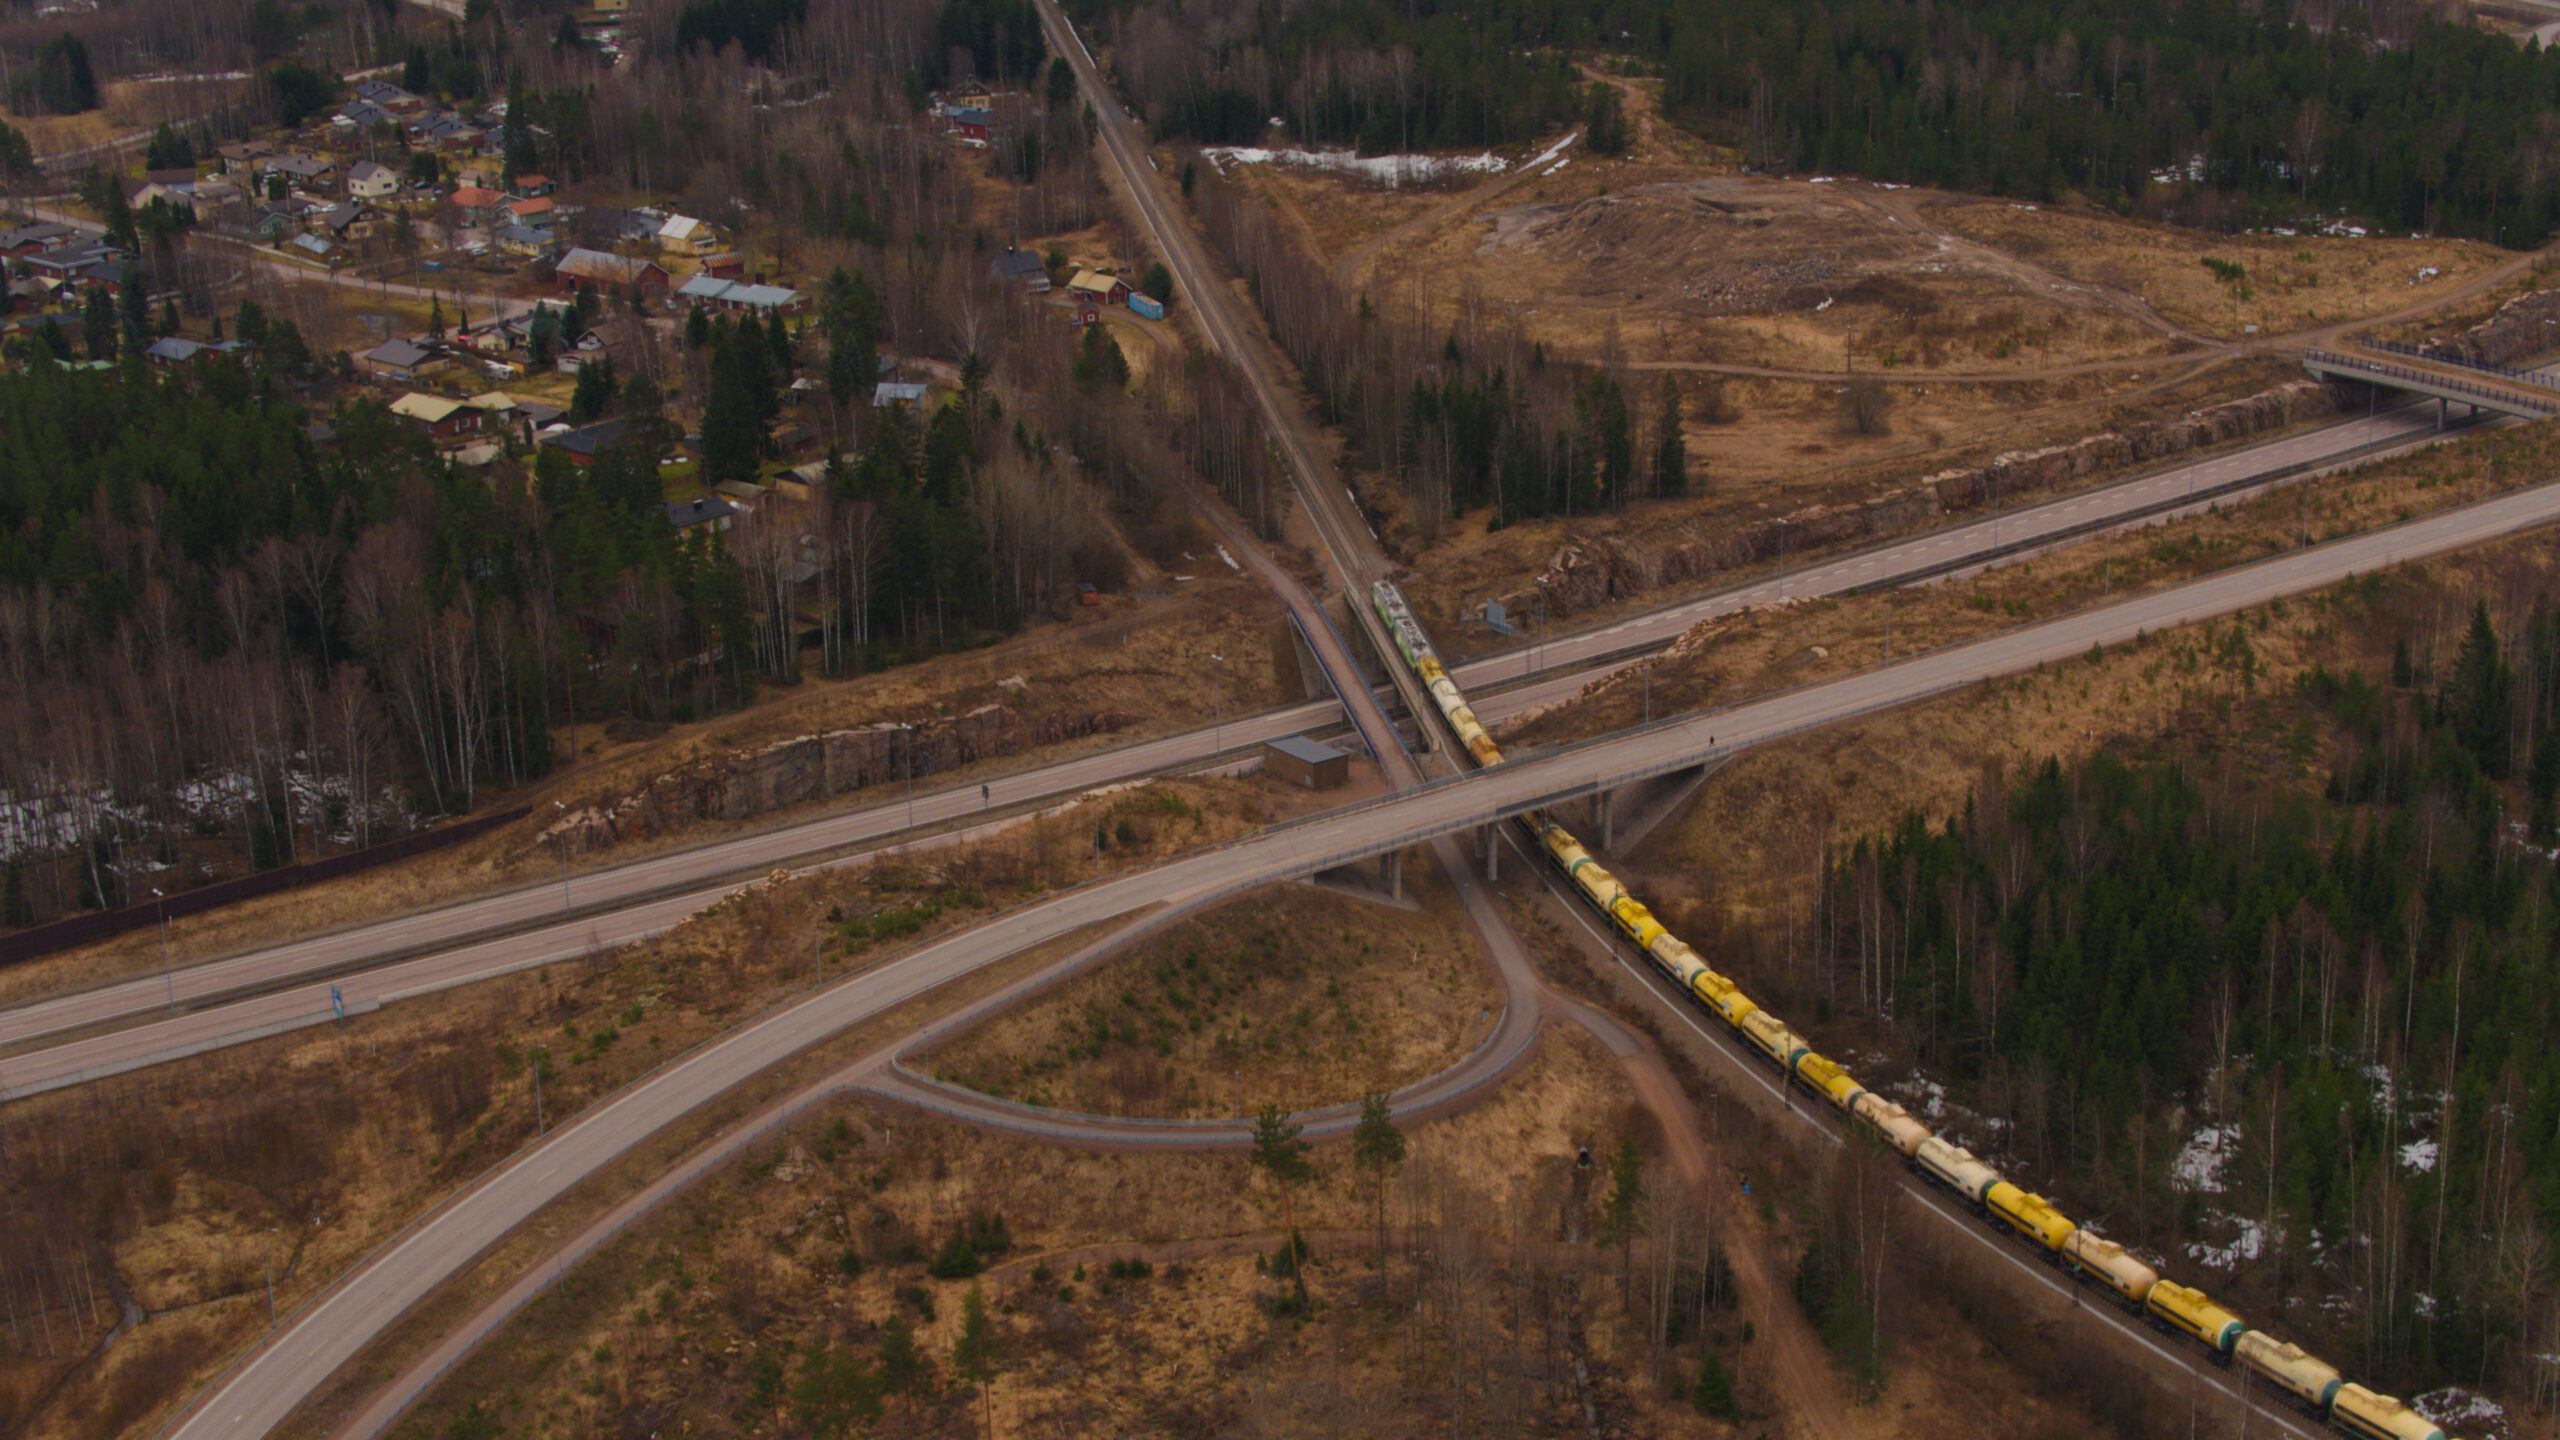 VR Transpoint's 7,000 ton freight train